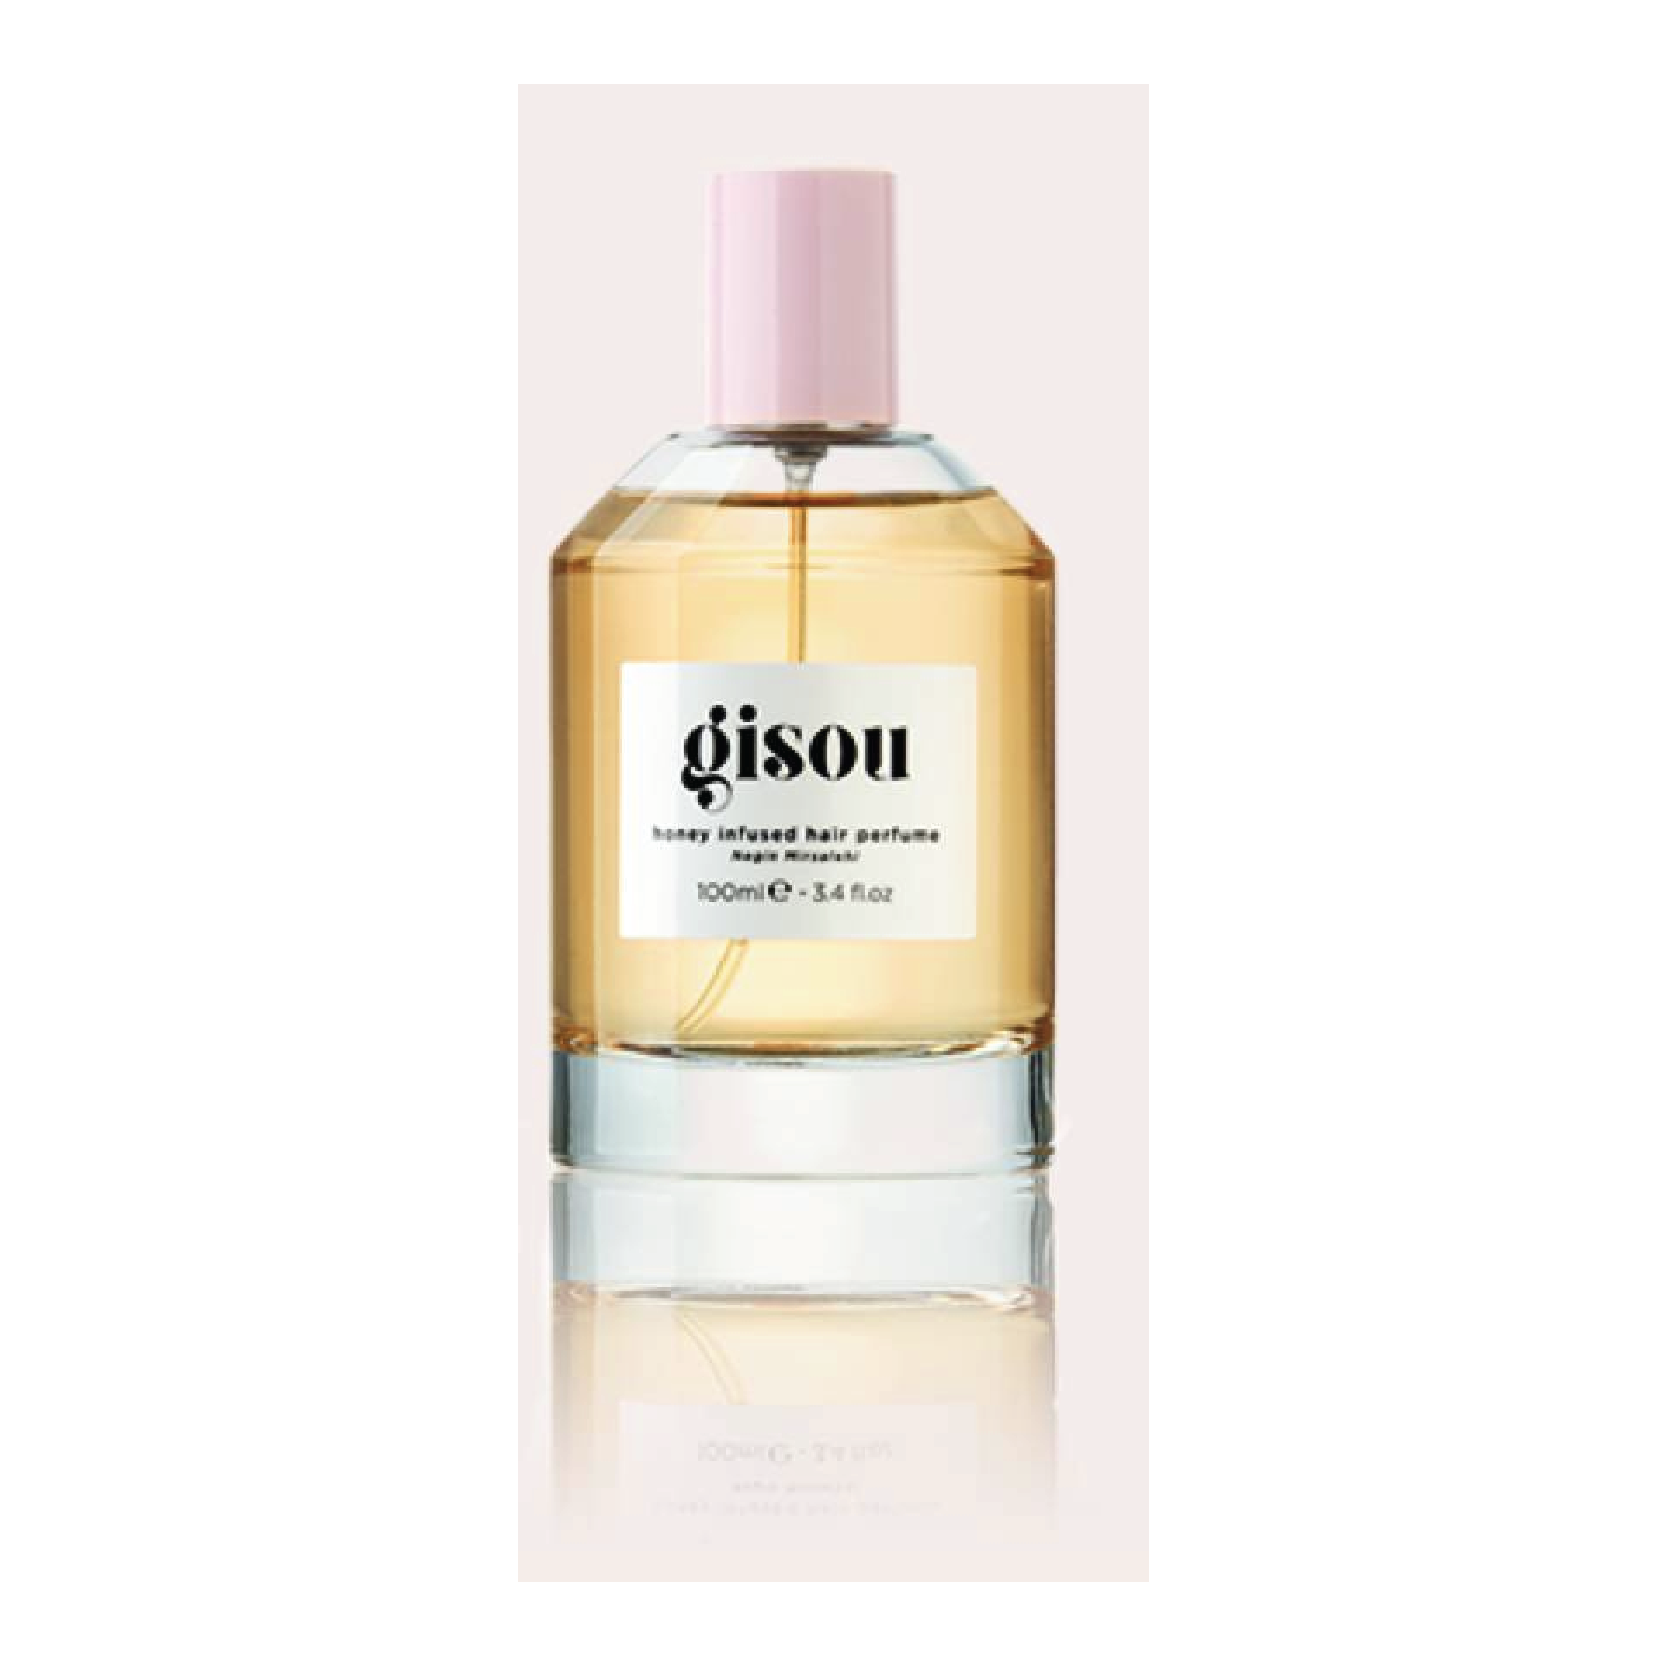 Gisou Honey Infused Hair Perfume 3.4 fl. oz. - $80 on GisouAn unexpected and unique hair product, this perfume refreshes hair while maintaining your natural moisture balance.